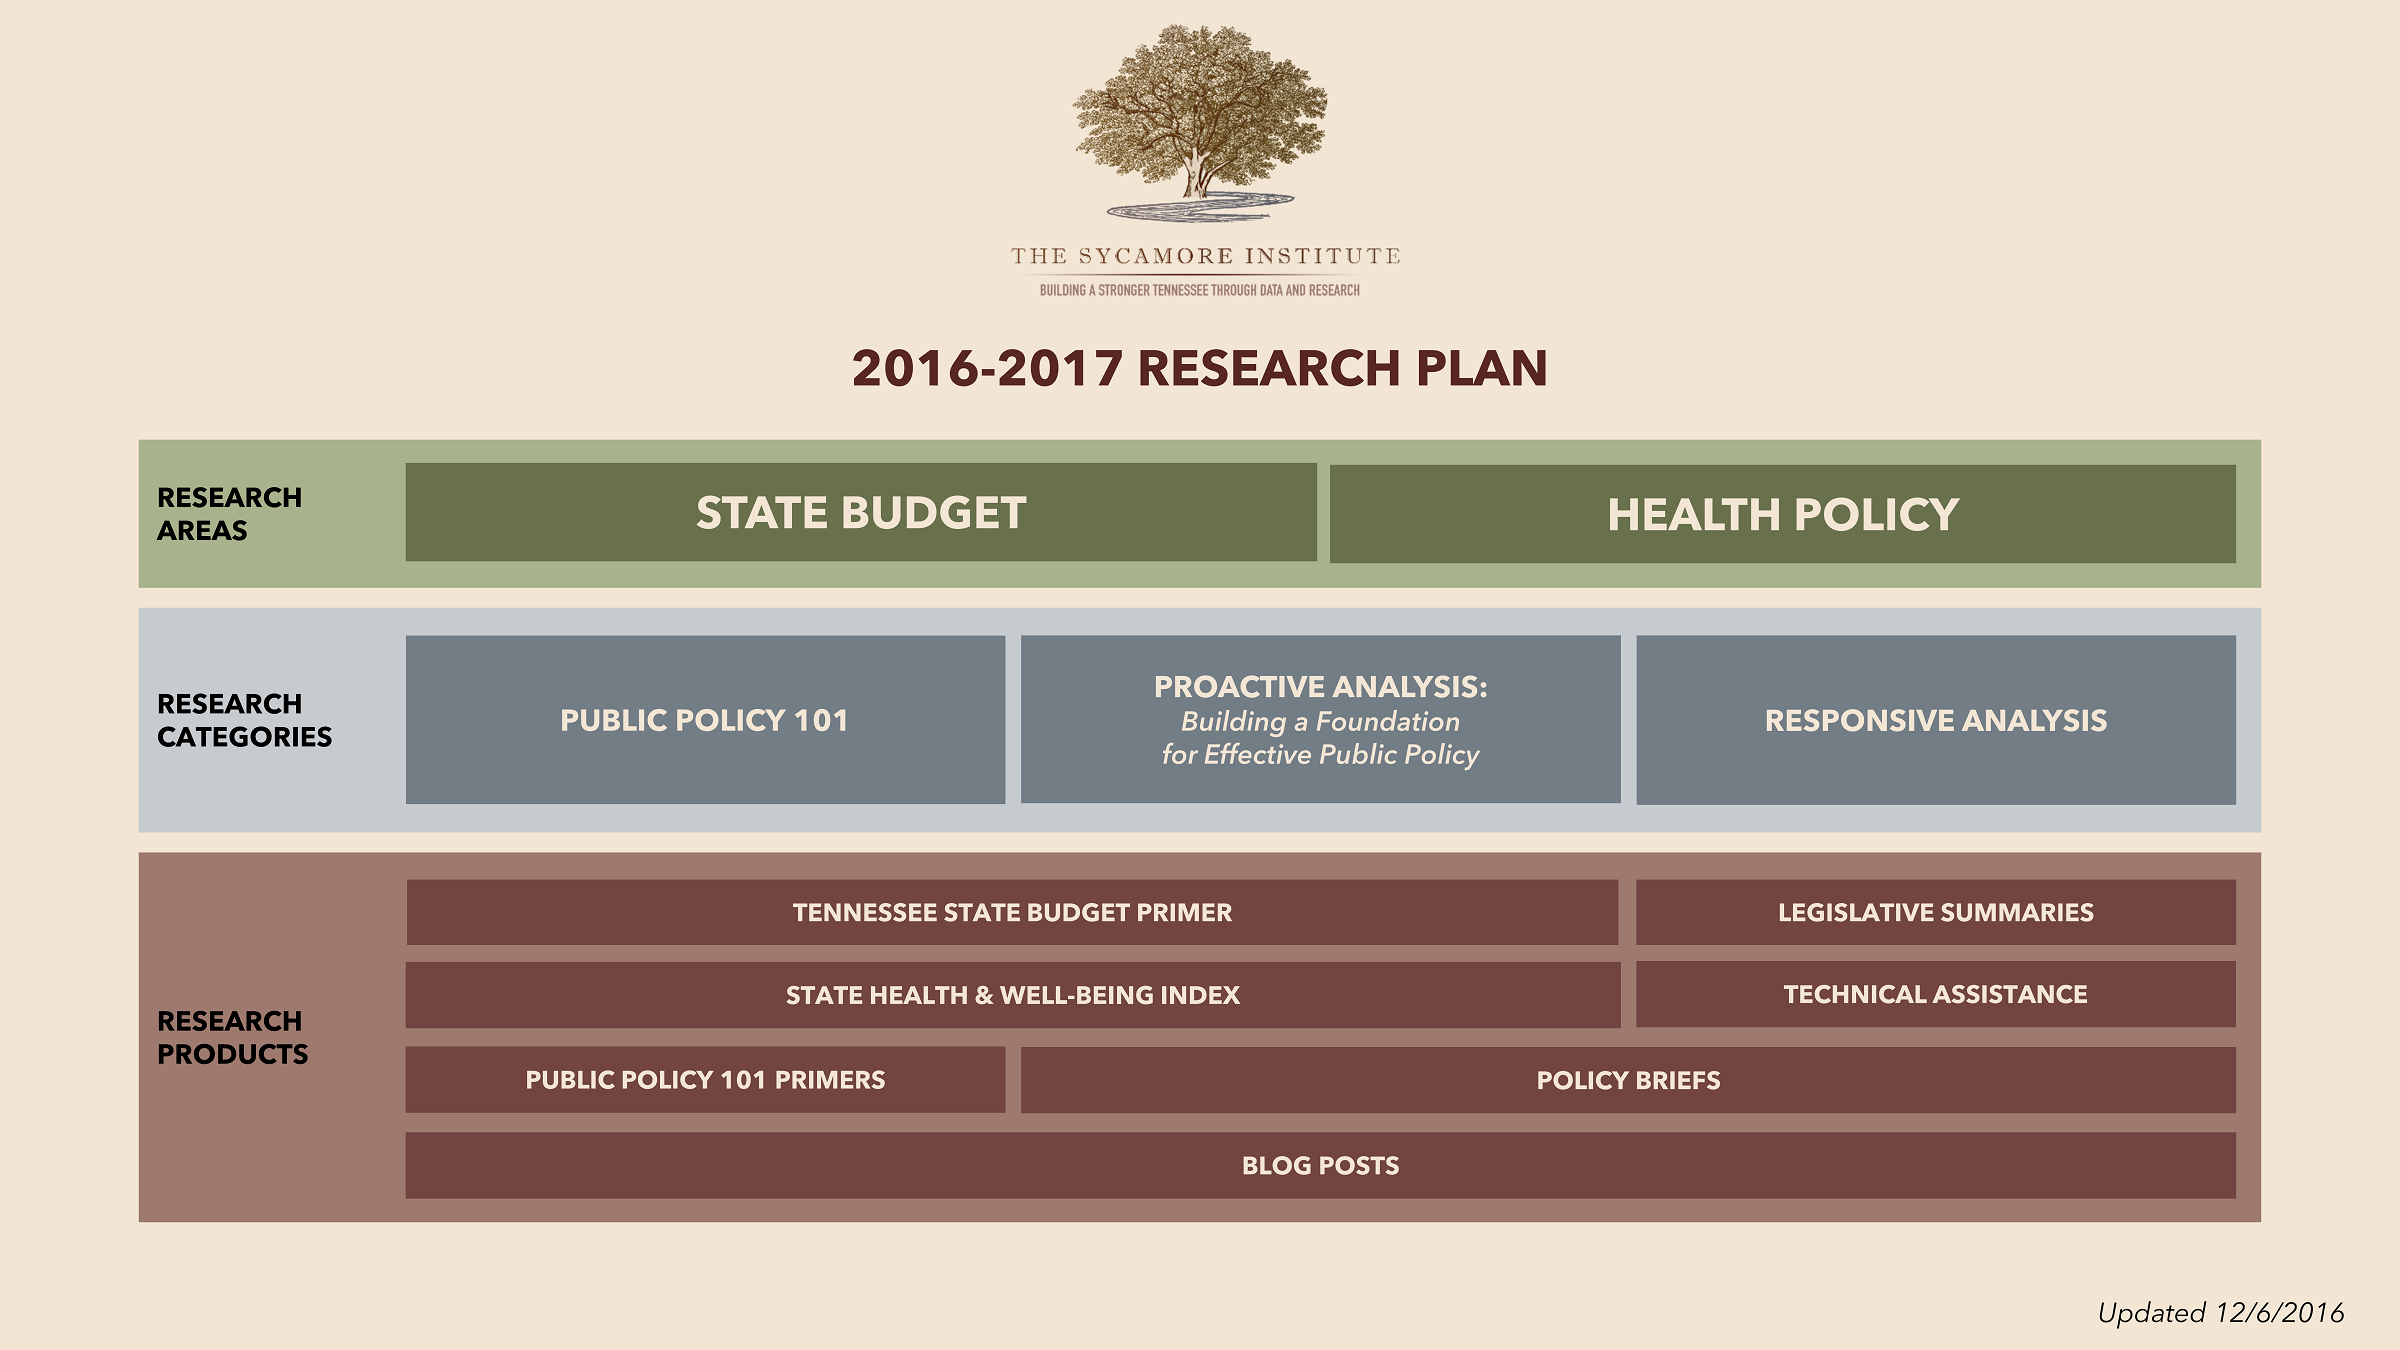 2016-2017 Research Plan